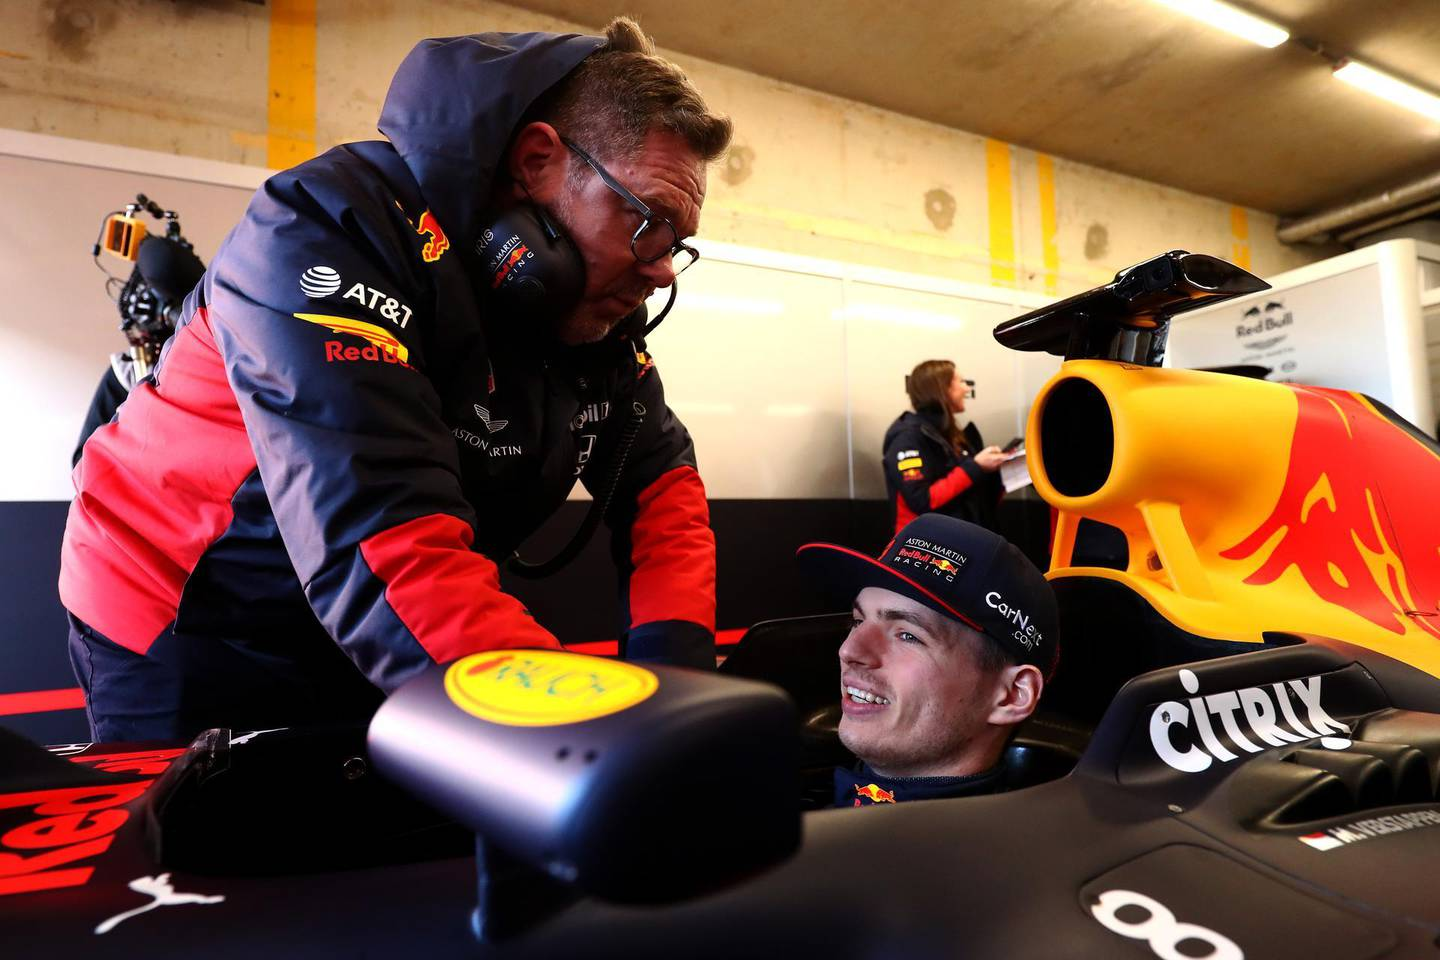 ZANDVOORT, NETHERLANDS - MARCH 04:  Max Verstappen of Red Bull Racing is pictured as he drives the first laps at the official opening for the upcoming F1 or Formula One race which will be held at Circuit Zandvoort on March 04, 2020 in Zandvoort, Netherlands. (Photo by Dean Mouhtaropoulos/Getty Images for Red Bull Racing)